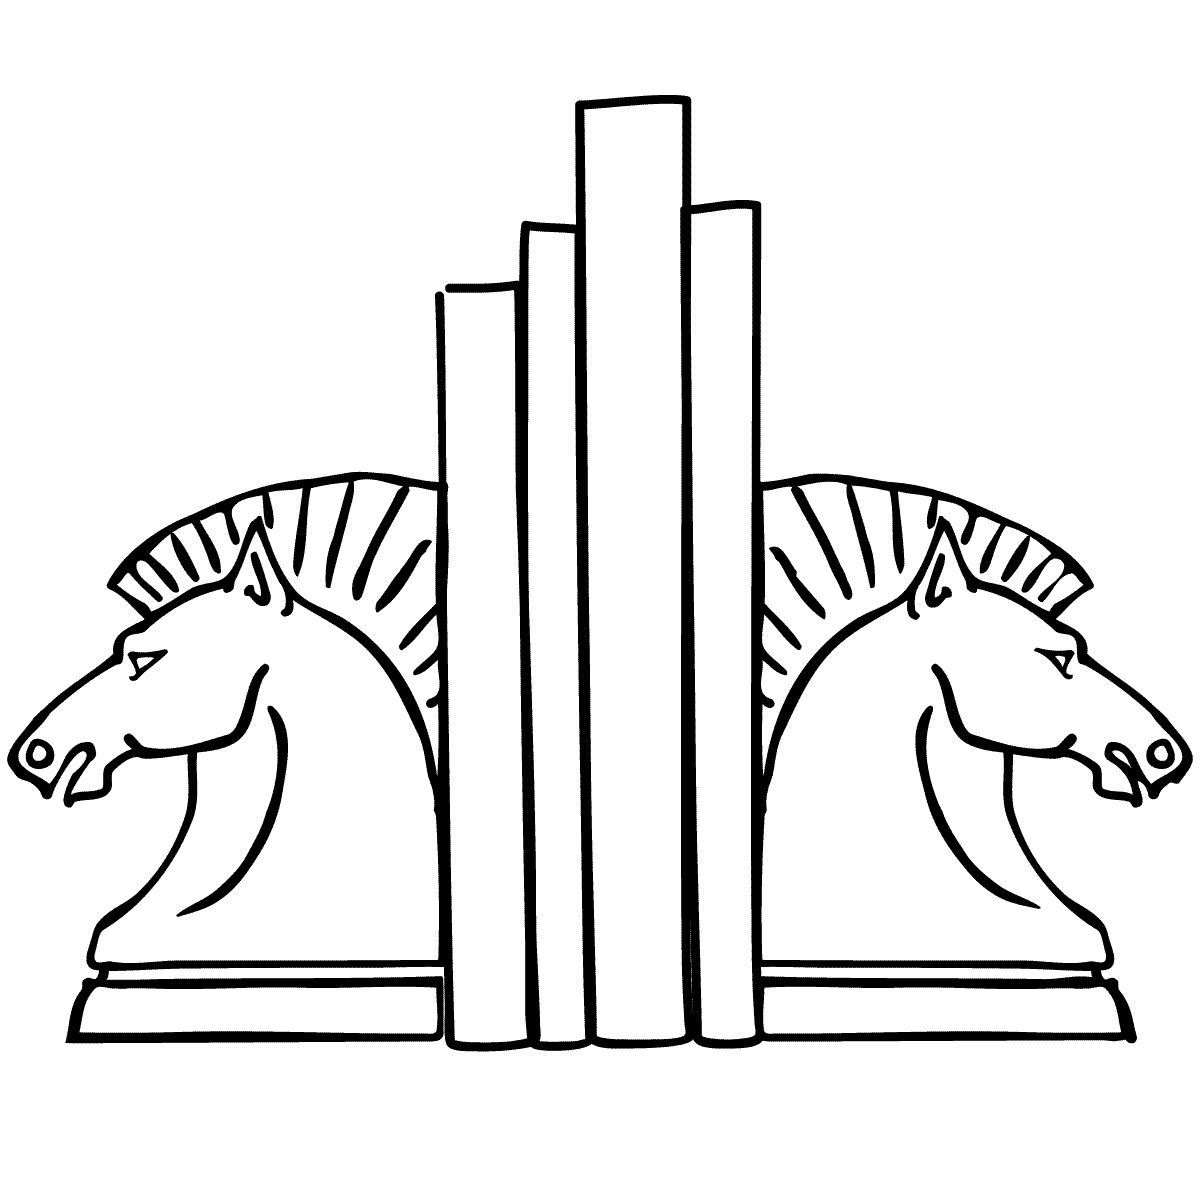 Bookend clipart graphic royalty free Ipad Coloring Pages Clipart | Free download best Ipad Coloring Pages ... graphic royalty free